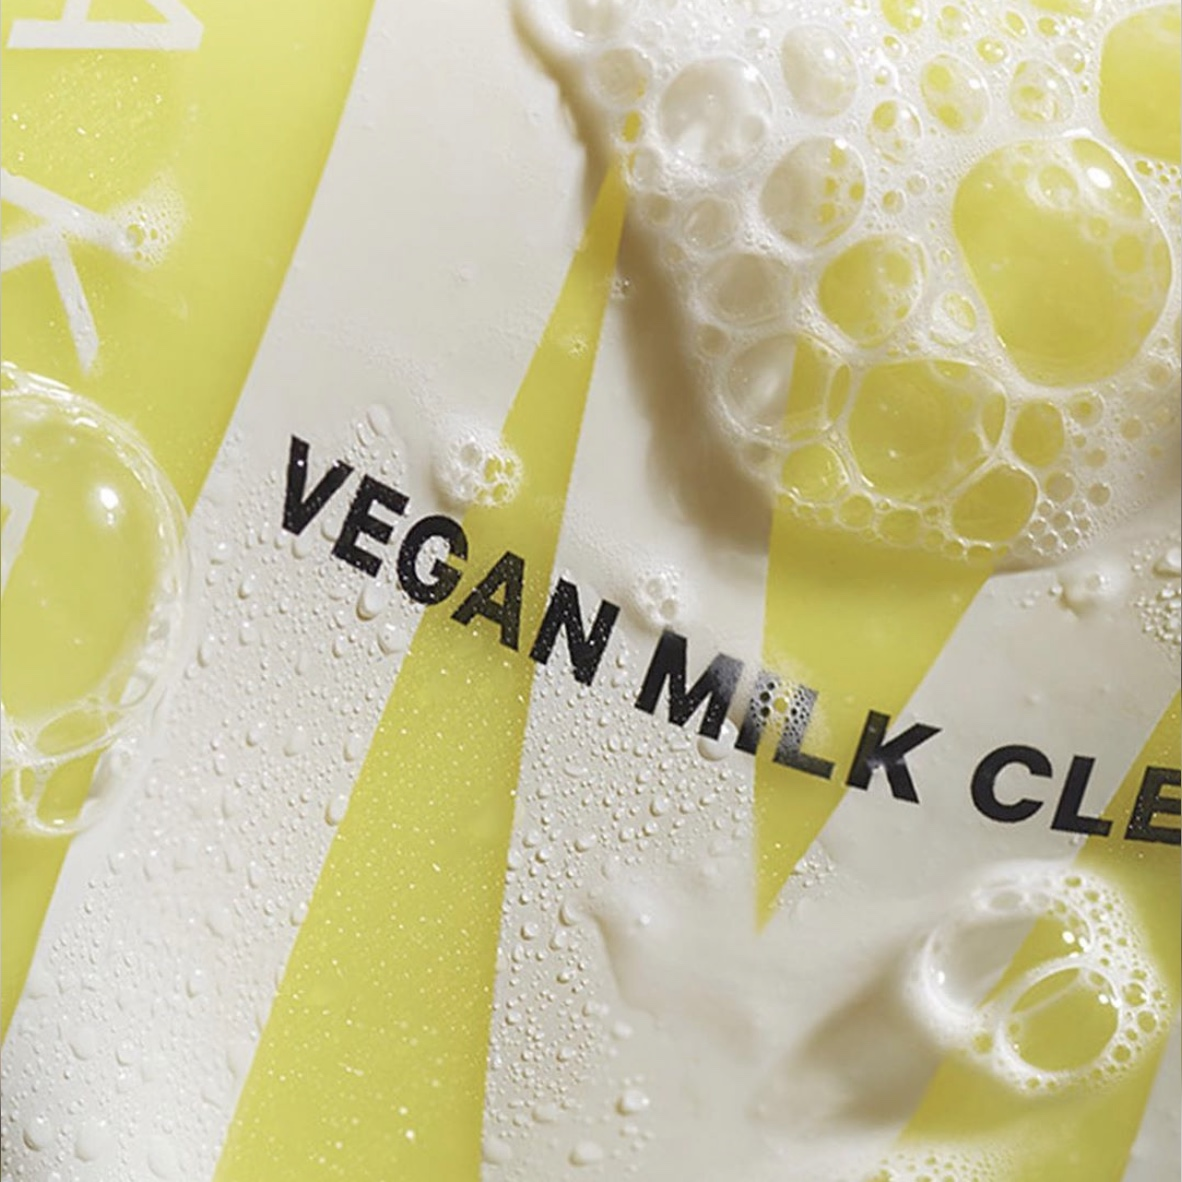 Milk Makeup Vegan Milk Facial Cleanser